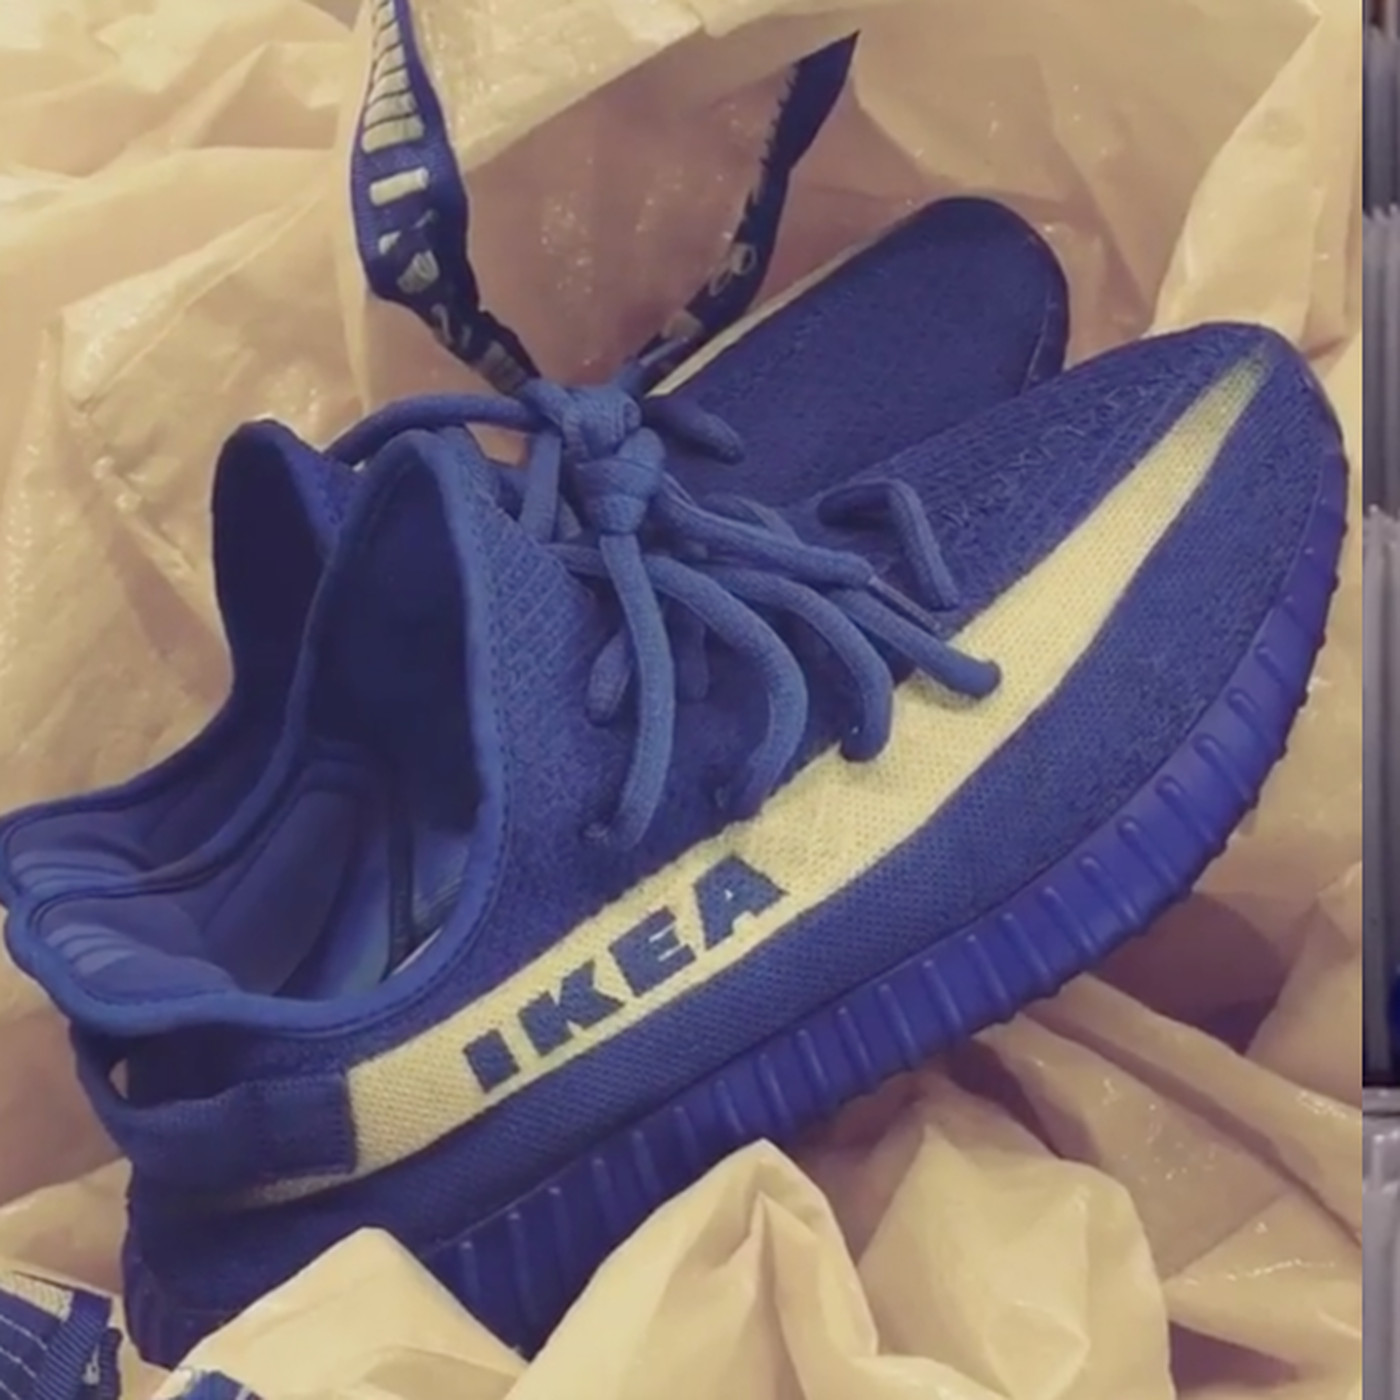 a1321386d IKEA-inspired Yeezys are a real thing and I want a pair - SBNation.com